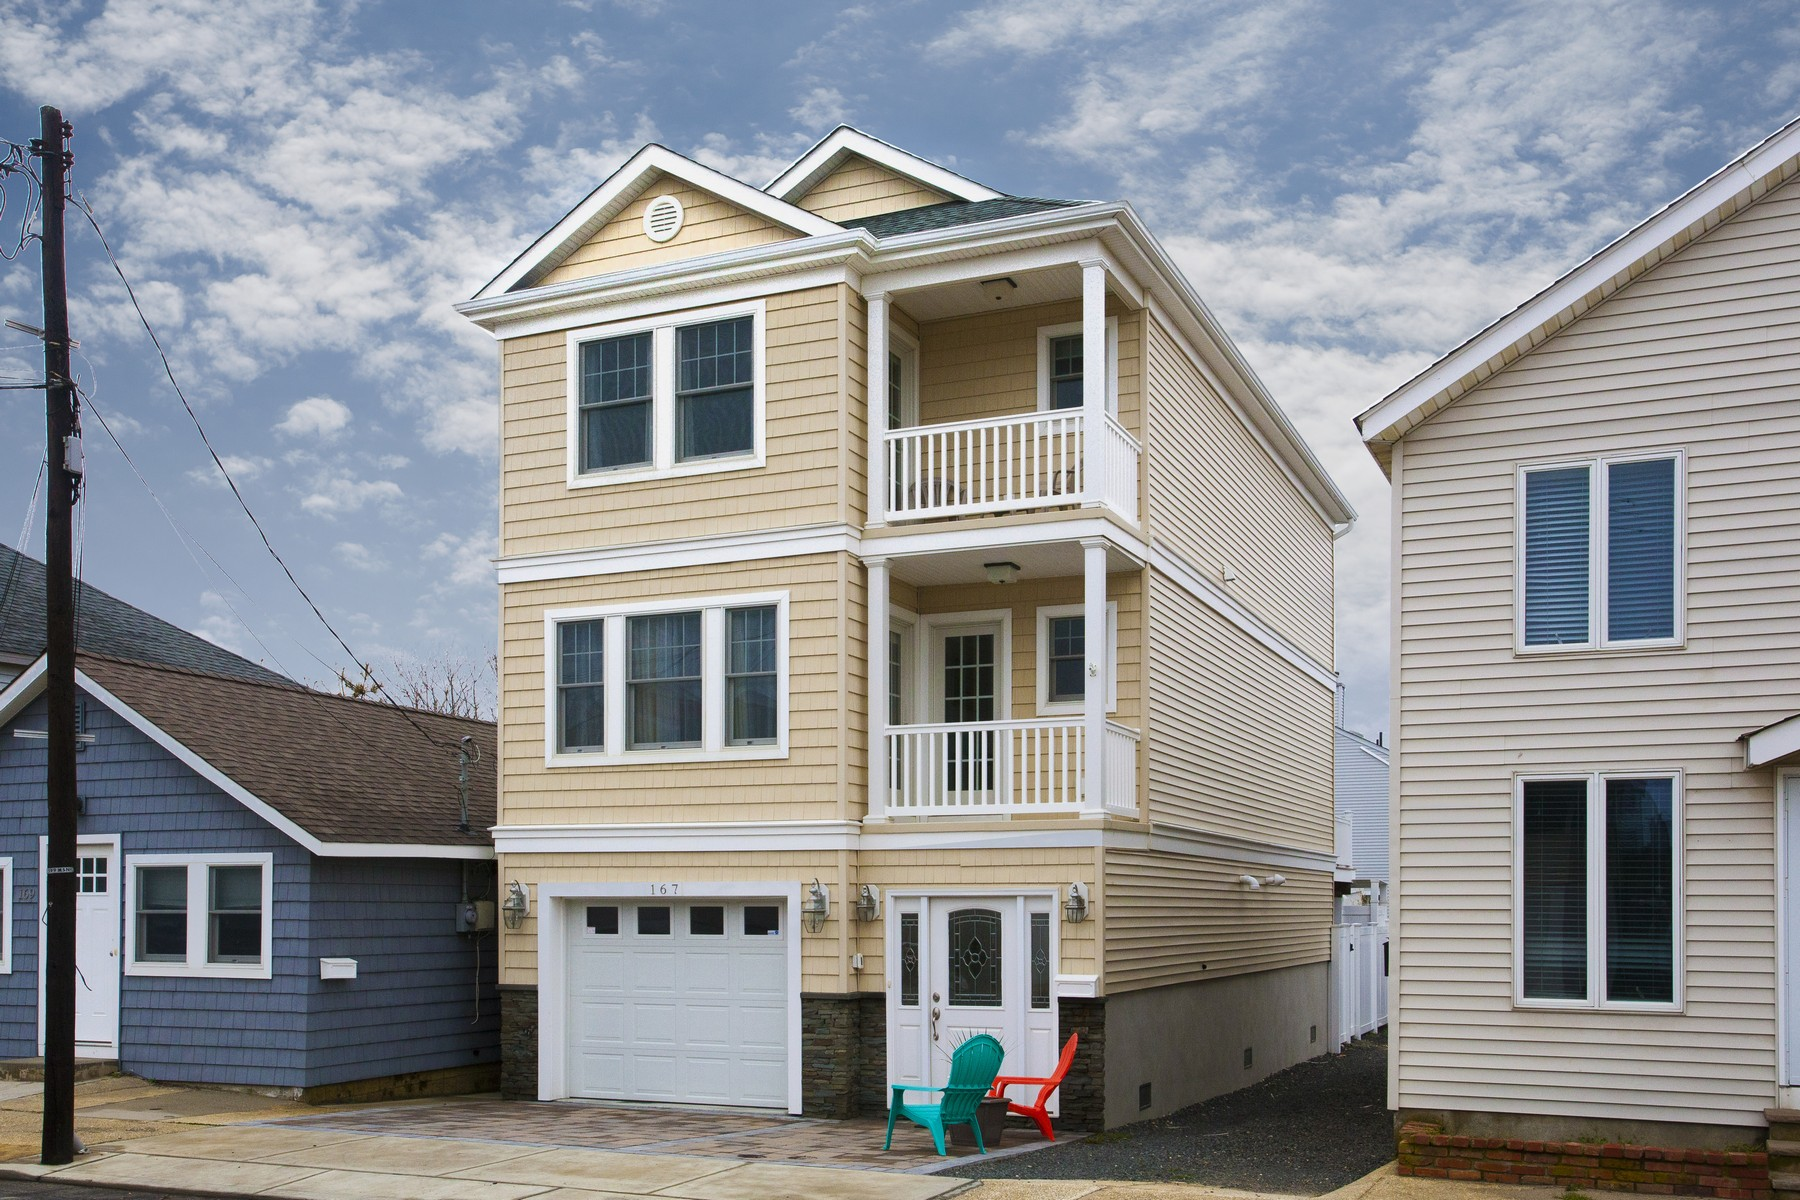 Single Family Home for Sale at Seashore Colonial 167 First Avenue Manasquan, New Jersey, 08736 United States